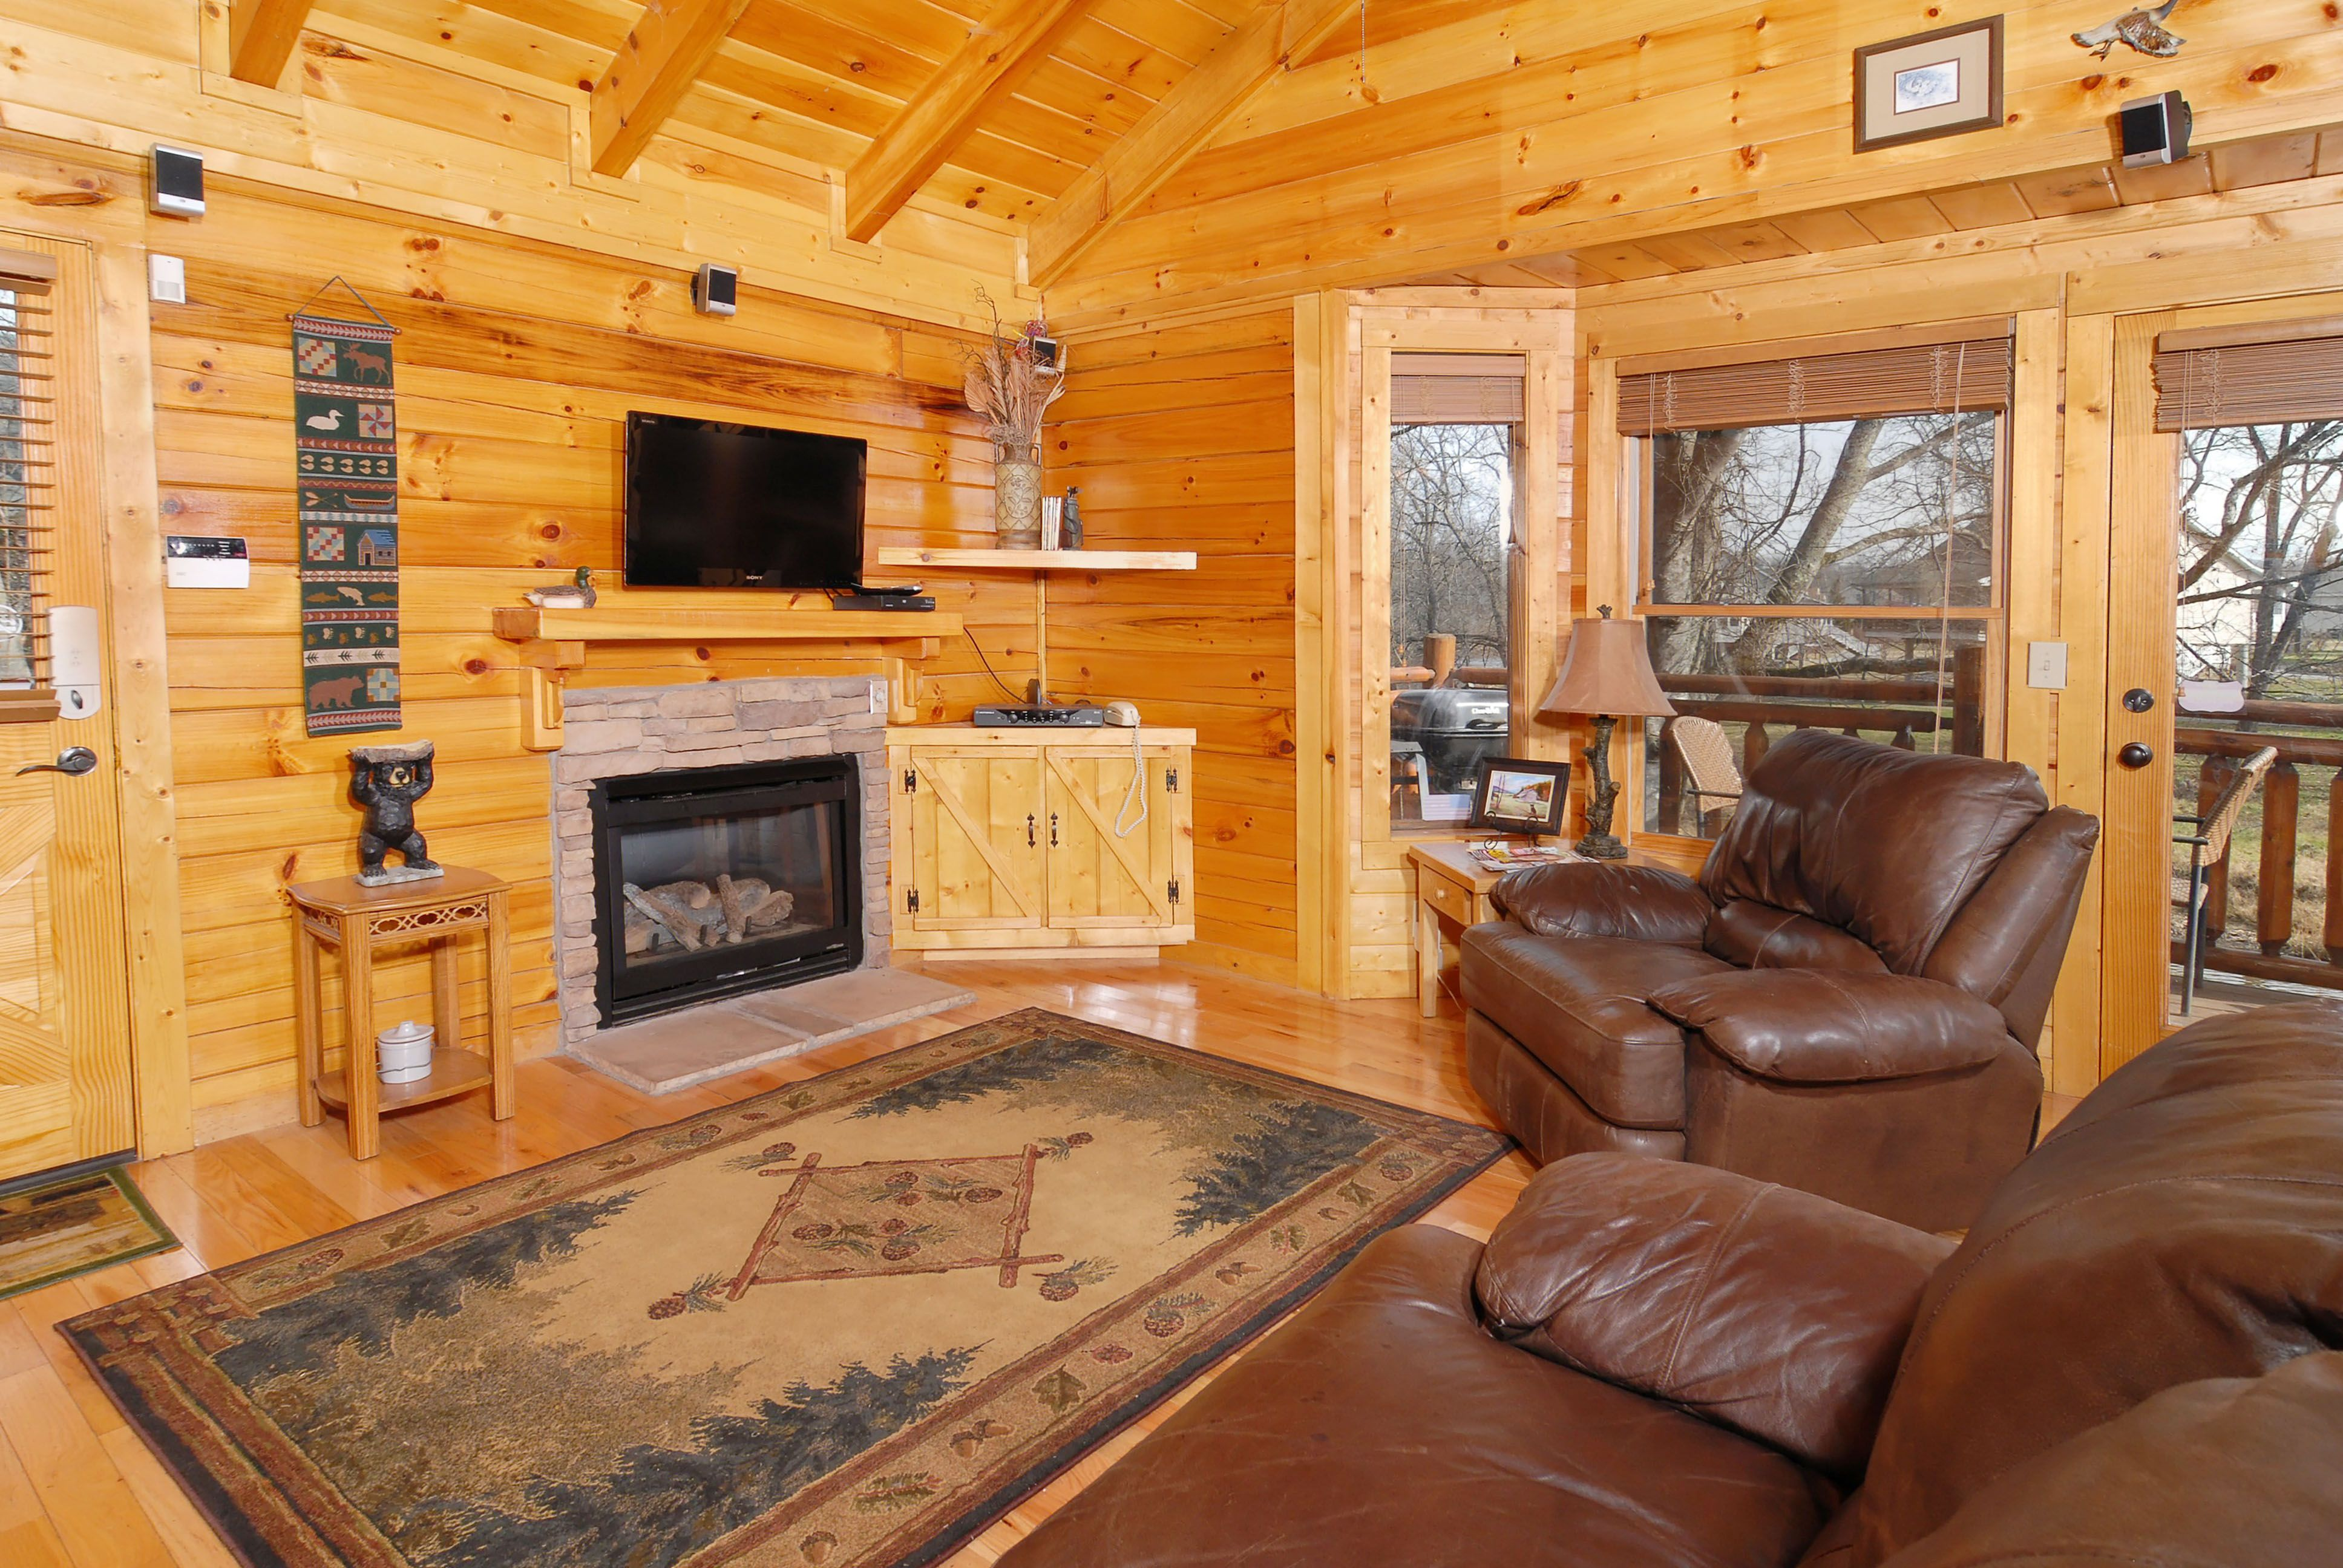 Small cabin ideas pictures remodel and decor - Luxury Log Cabin Living Room In Home Remodel Ideas Or Log Cabin Living Room Log